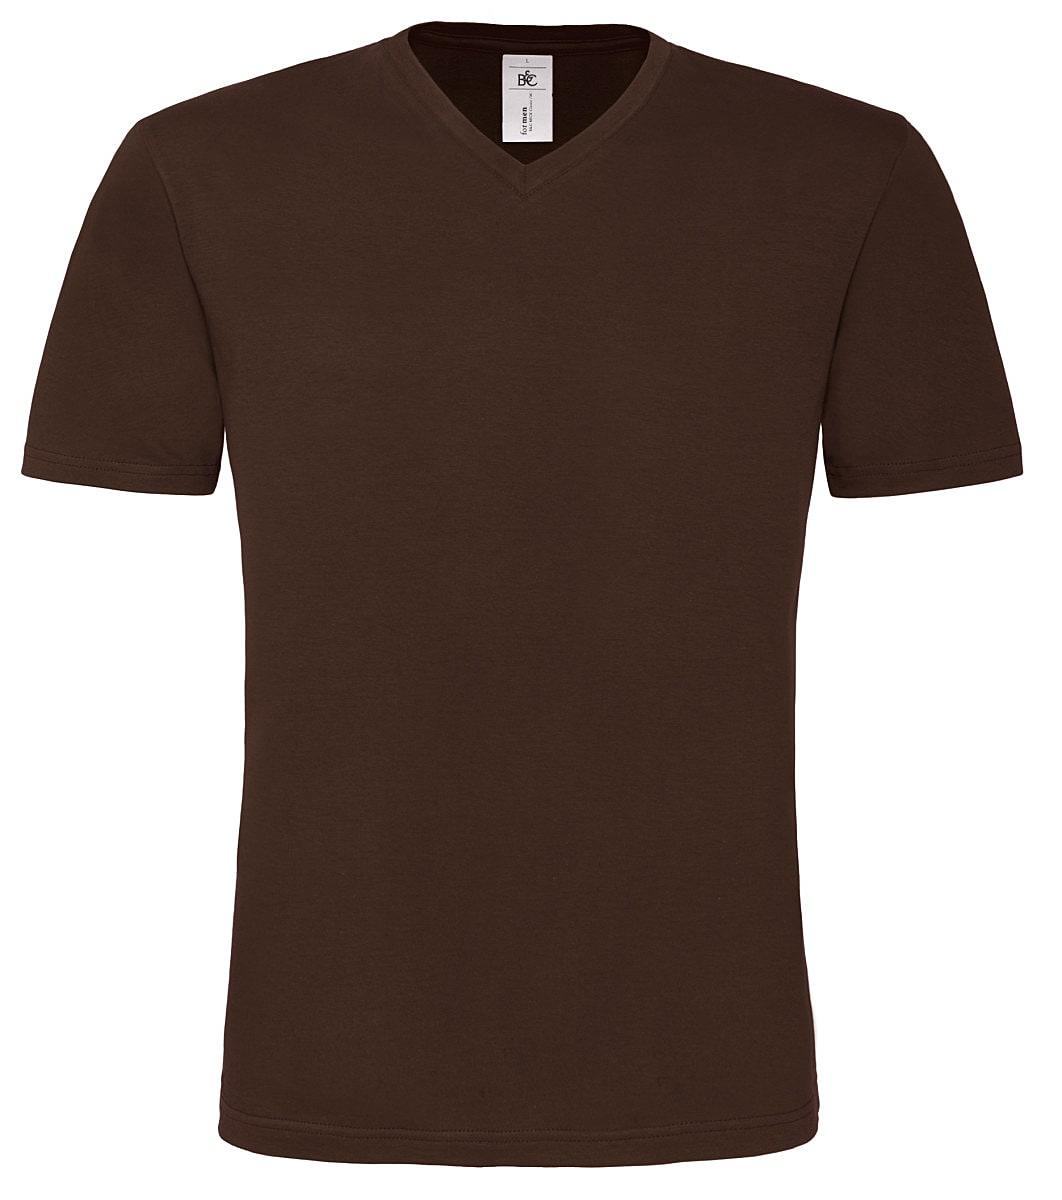 B&C Mens Mick Classic T-Shirt in Brown (Product Code: TM060)